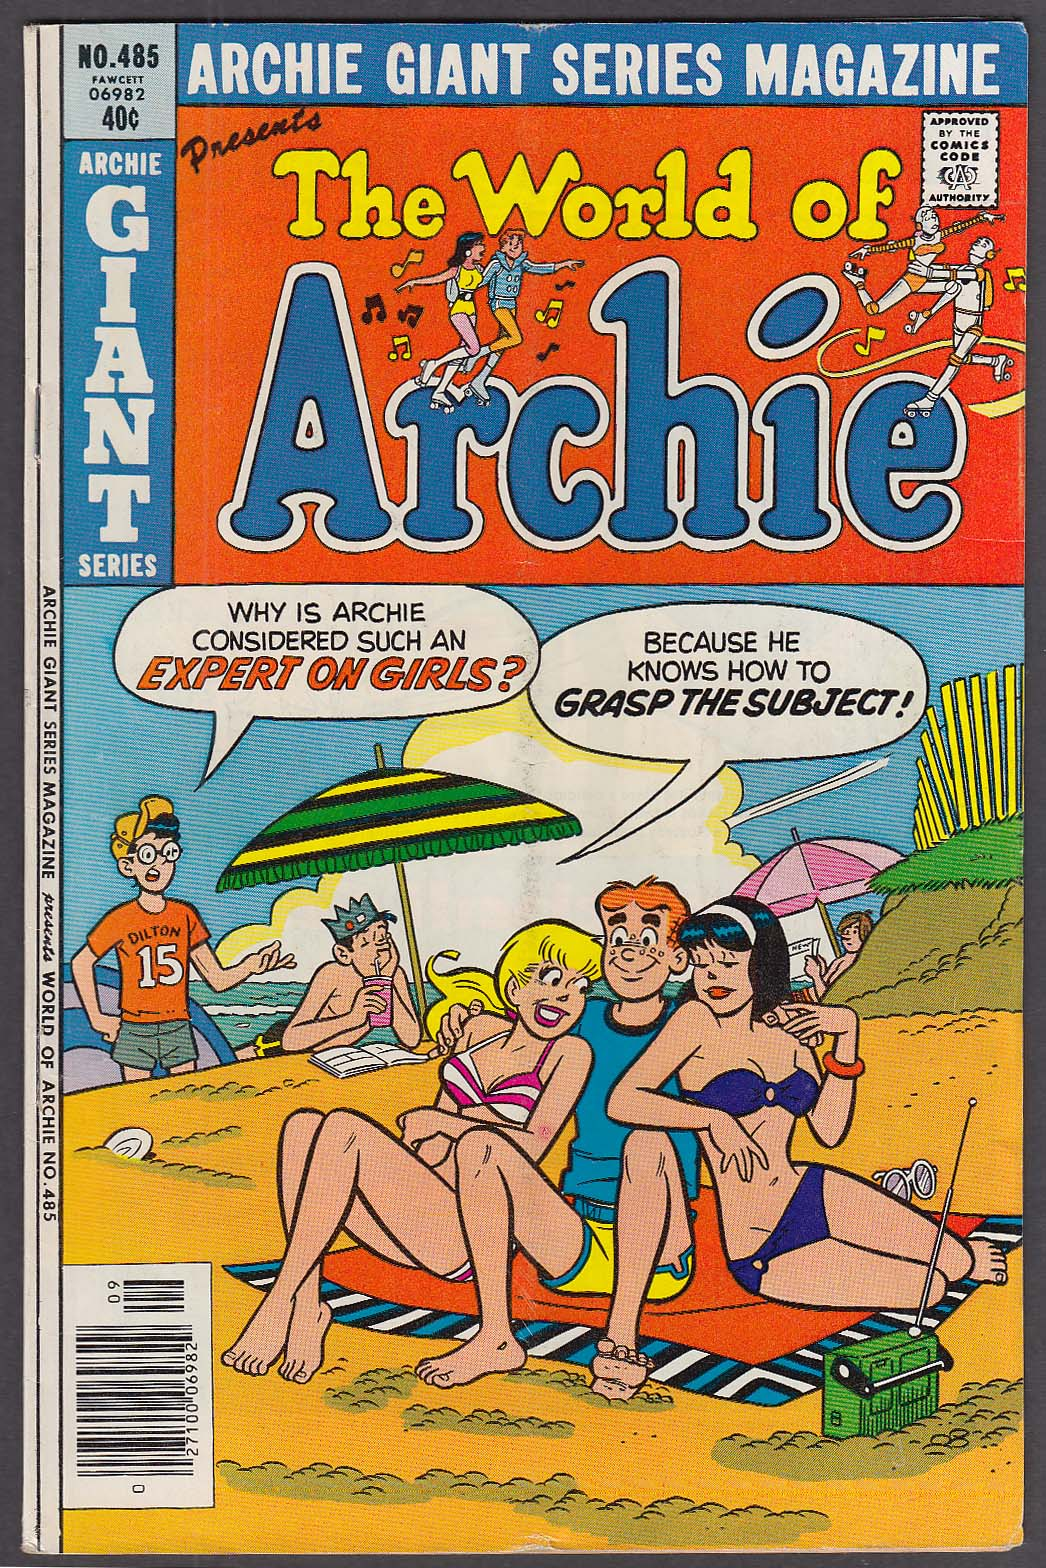 ARCHIE GIANT SERIES MAGAZINE #485 World of Archie Fawcett comic book 9 1979